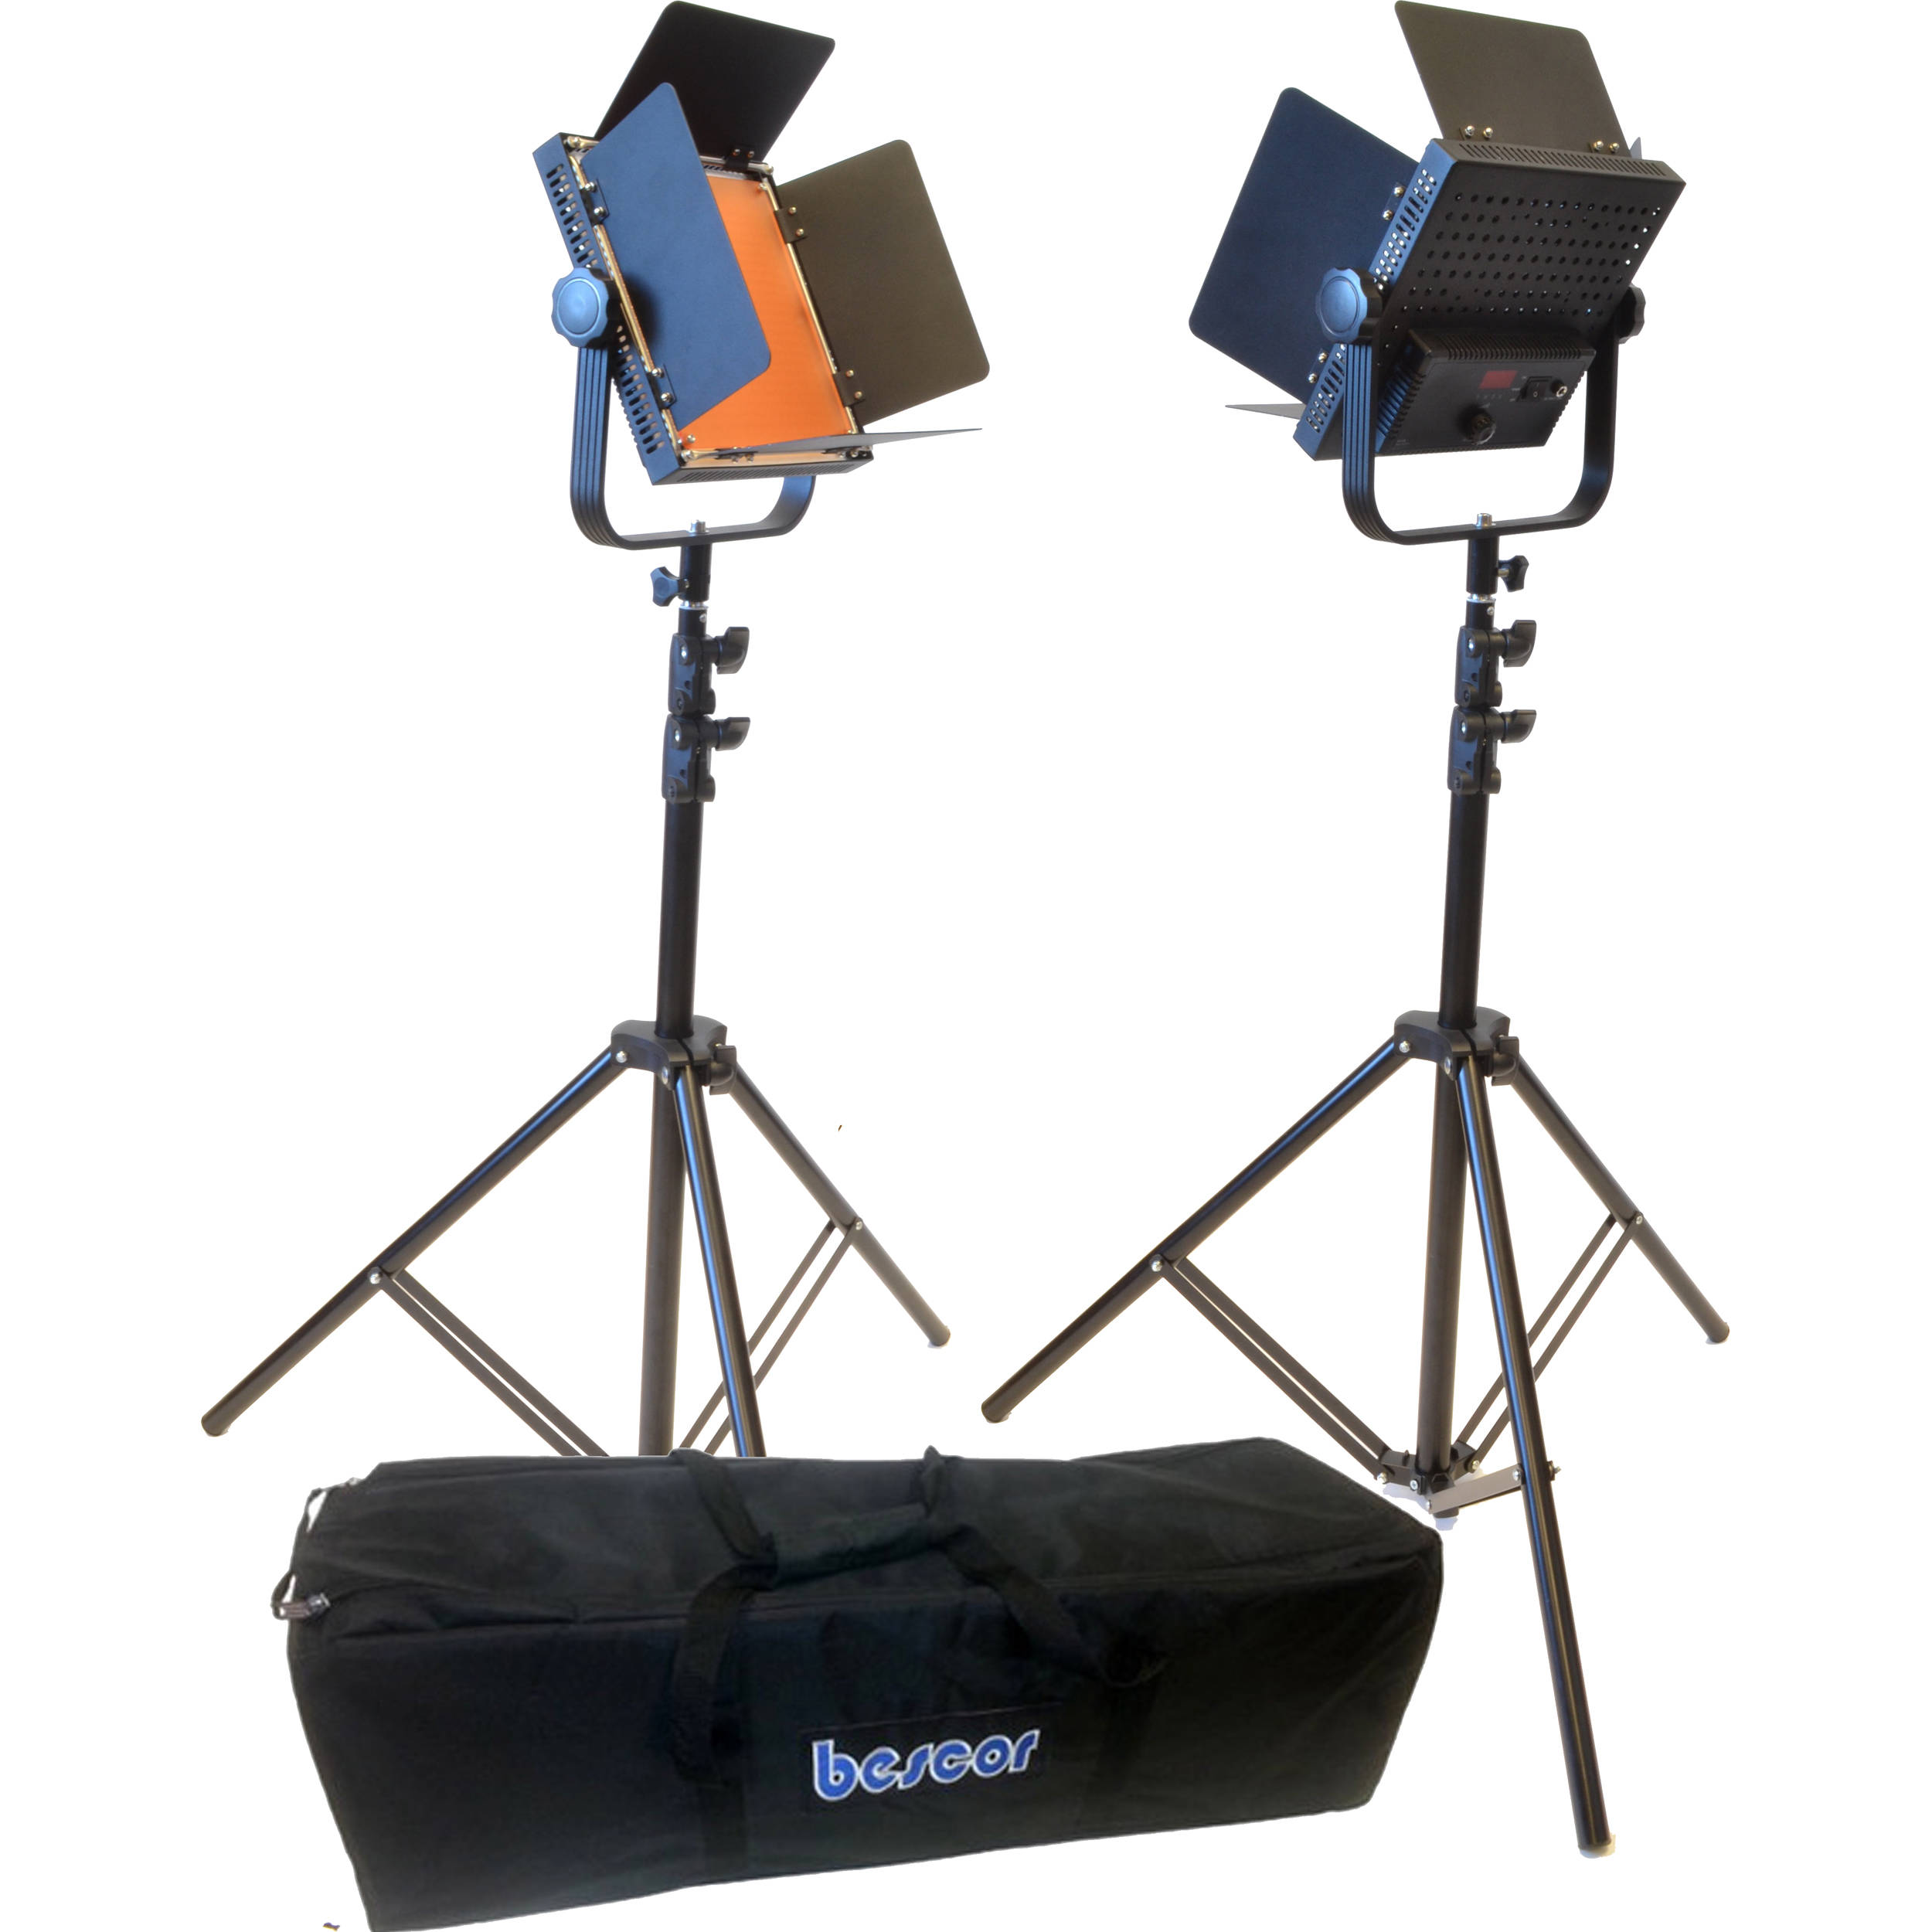 Led Studio Light Repair: Bescor AL-576K LED Studio 2-Light Kit AL576K B&H Photo Video